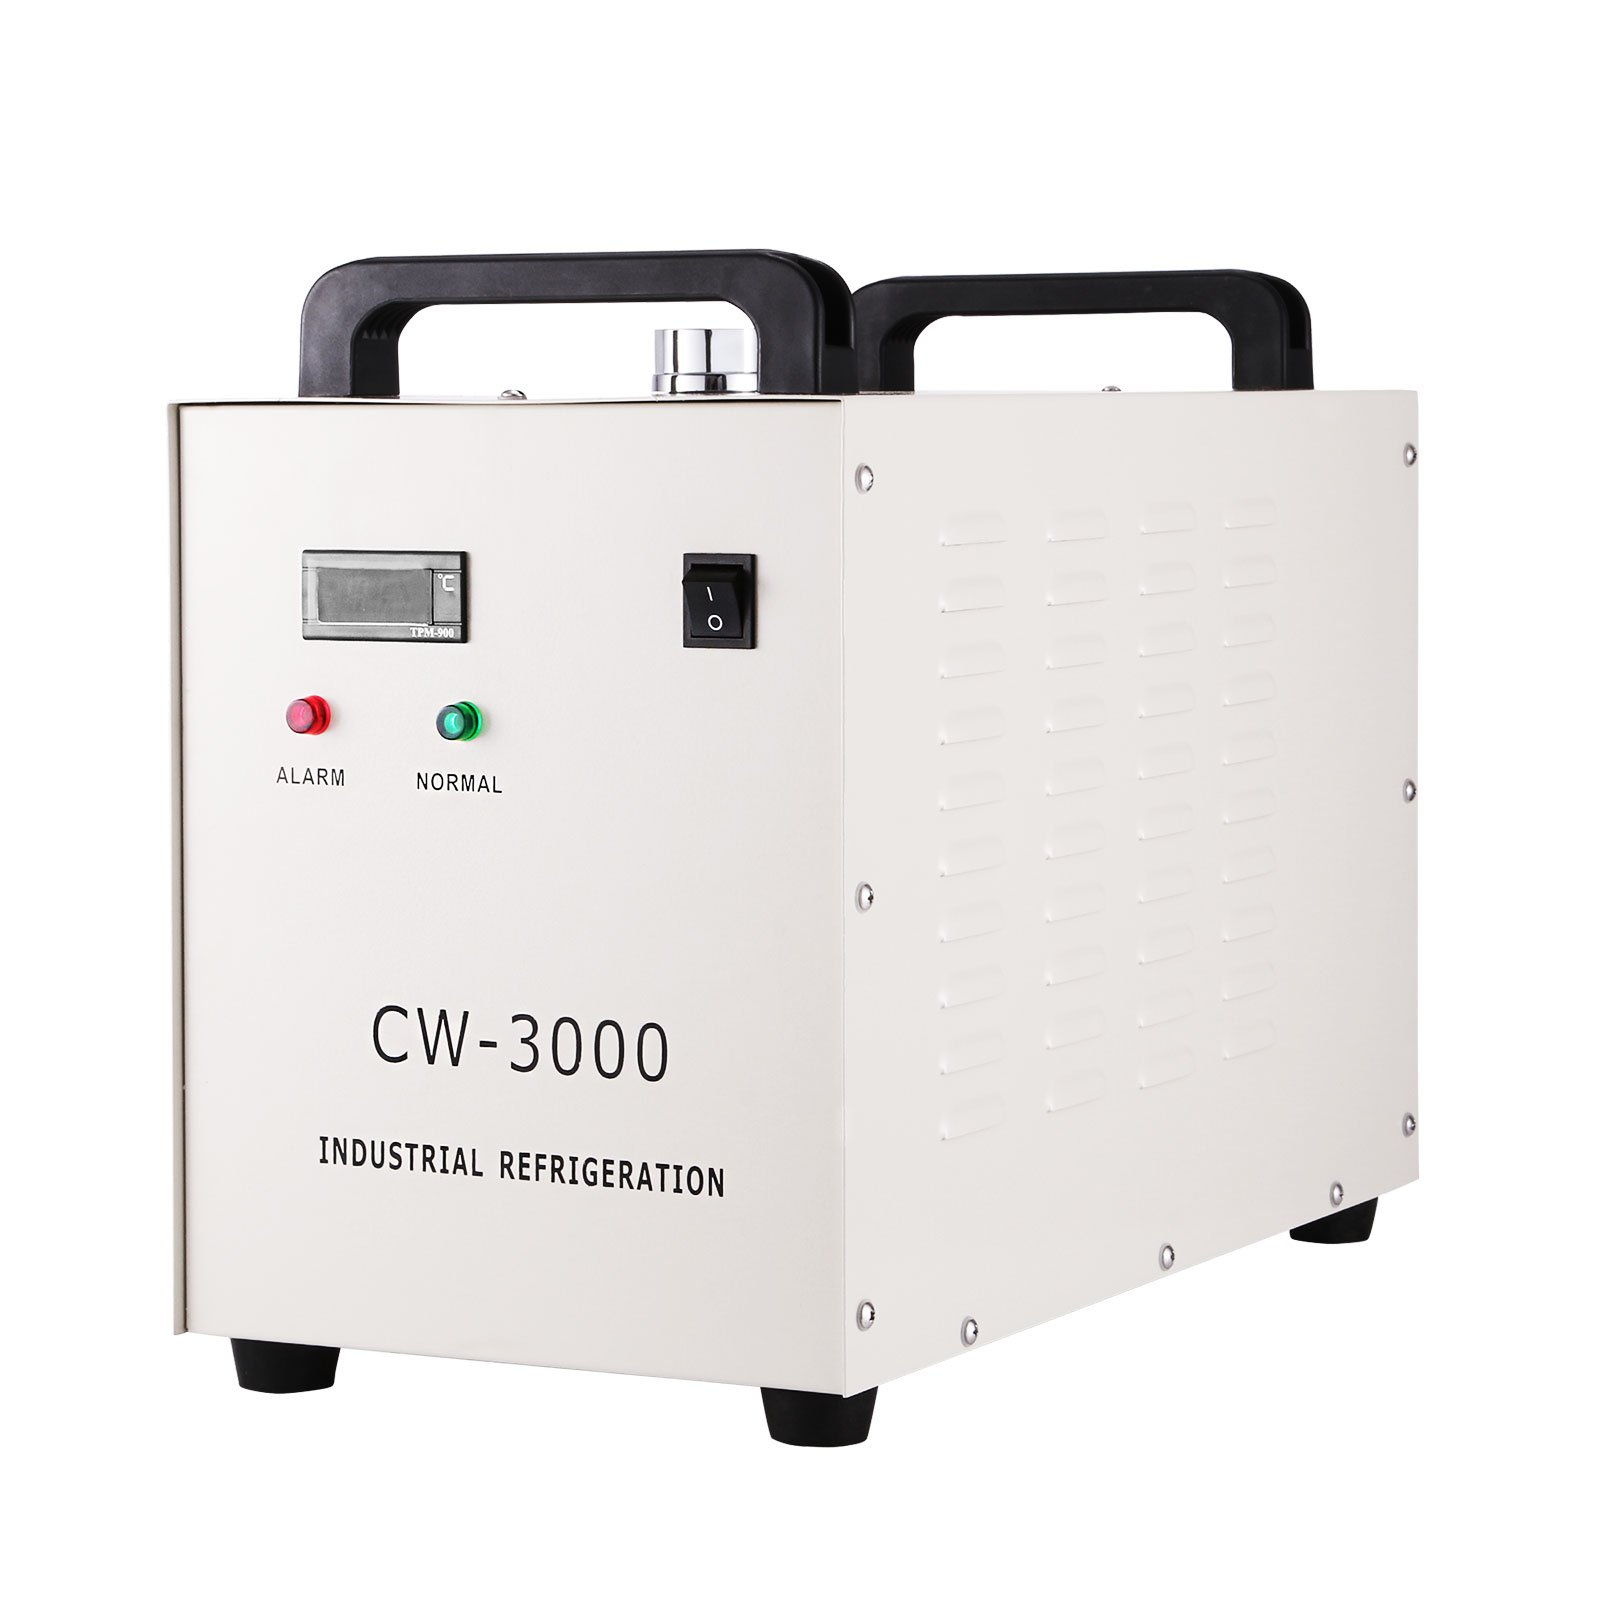 BestEquip 9L Capacity Industrial Chiller CW-3000DG 220V Water Chiller Thermolysis Industrial Water Chiller Machine for 60W 80W CO2 Glass Tube